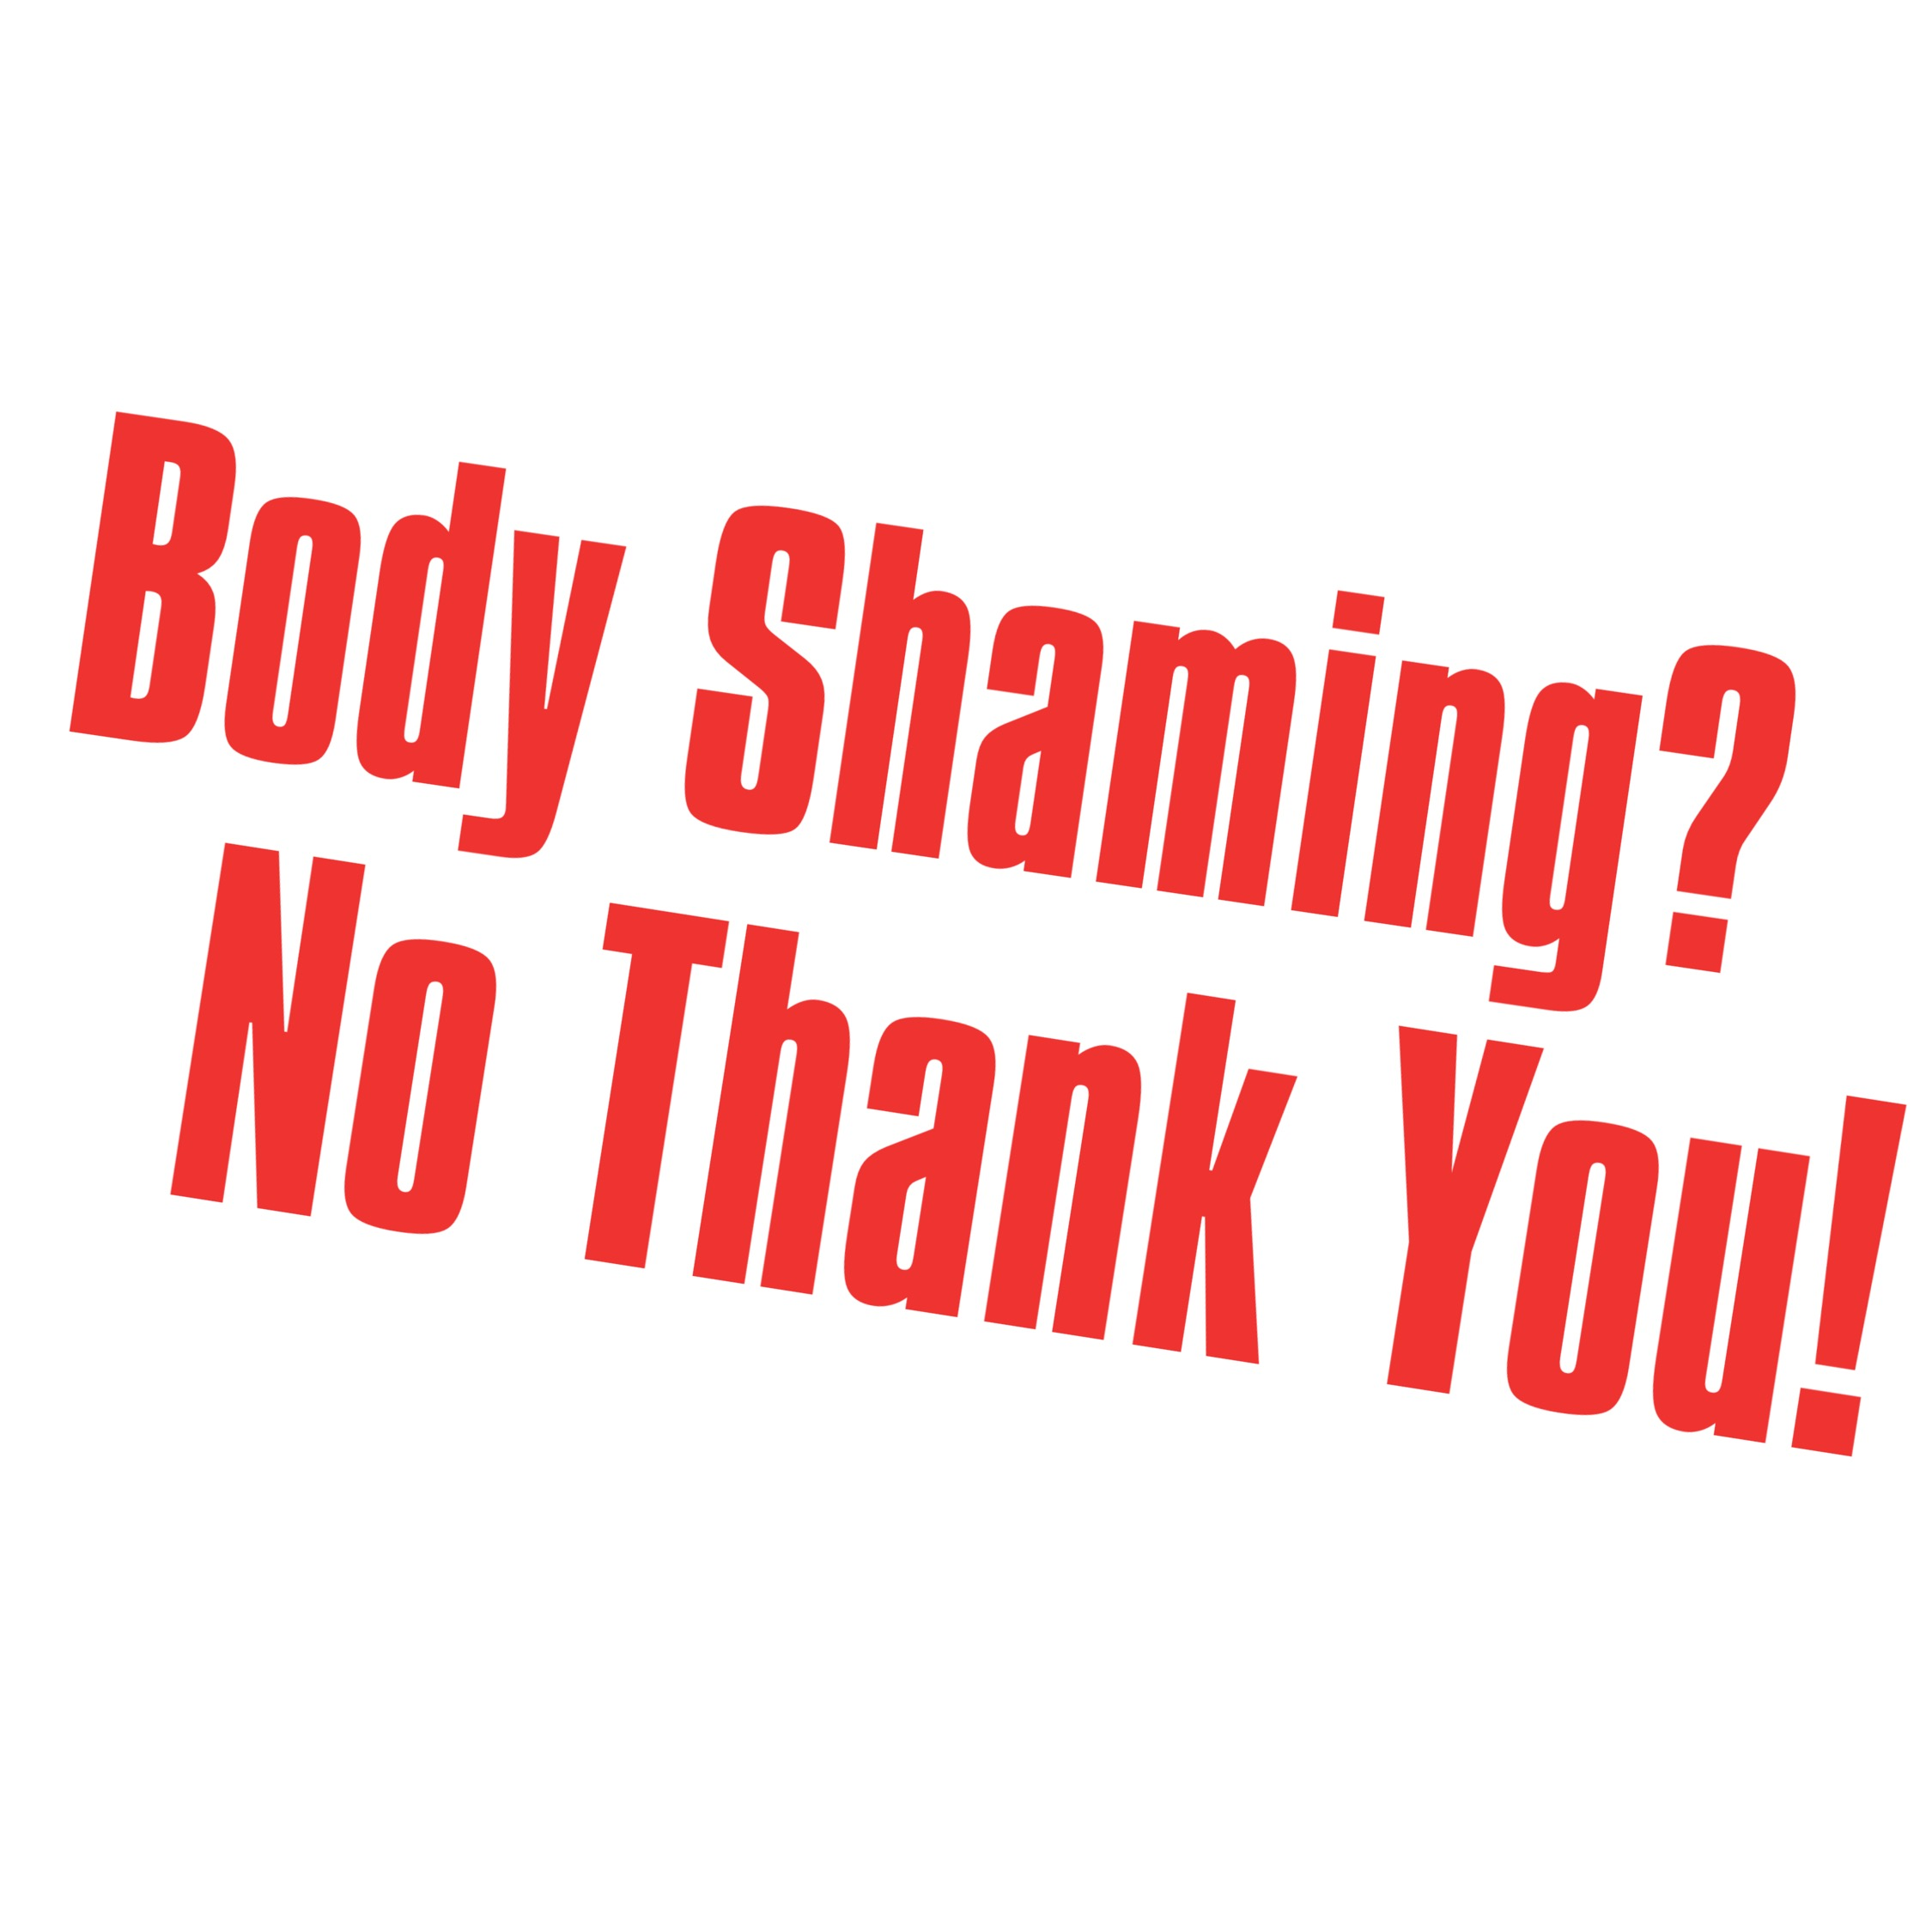 Body Shaming? No Thank You!